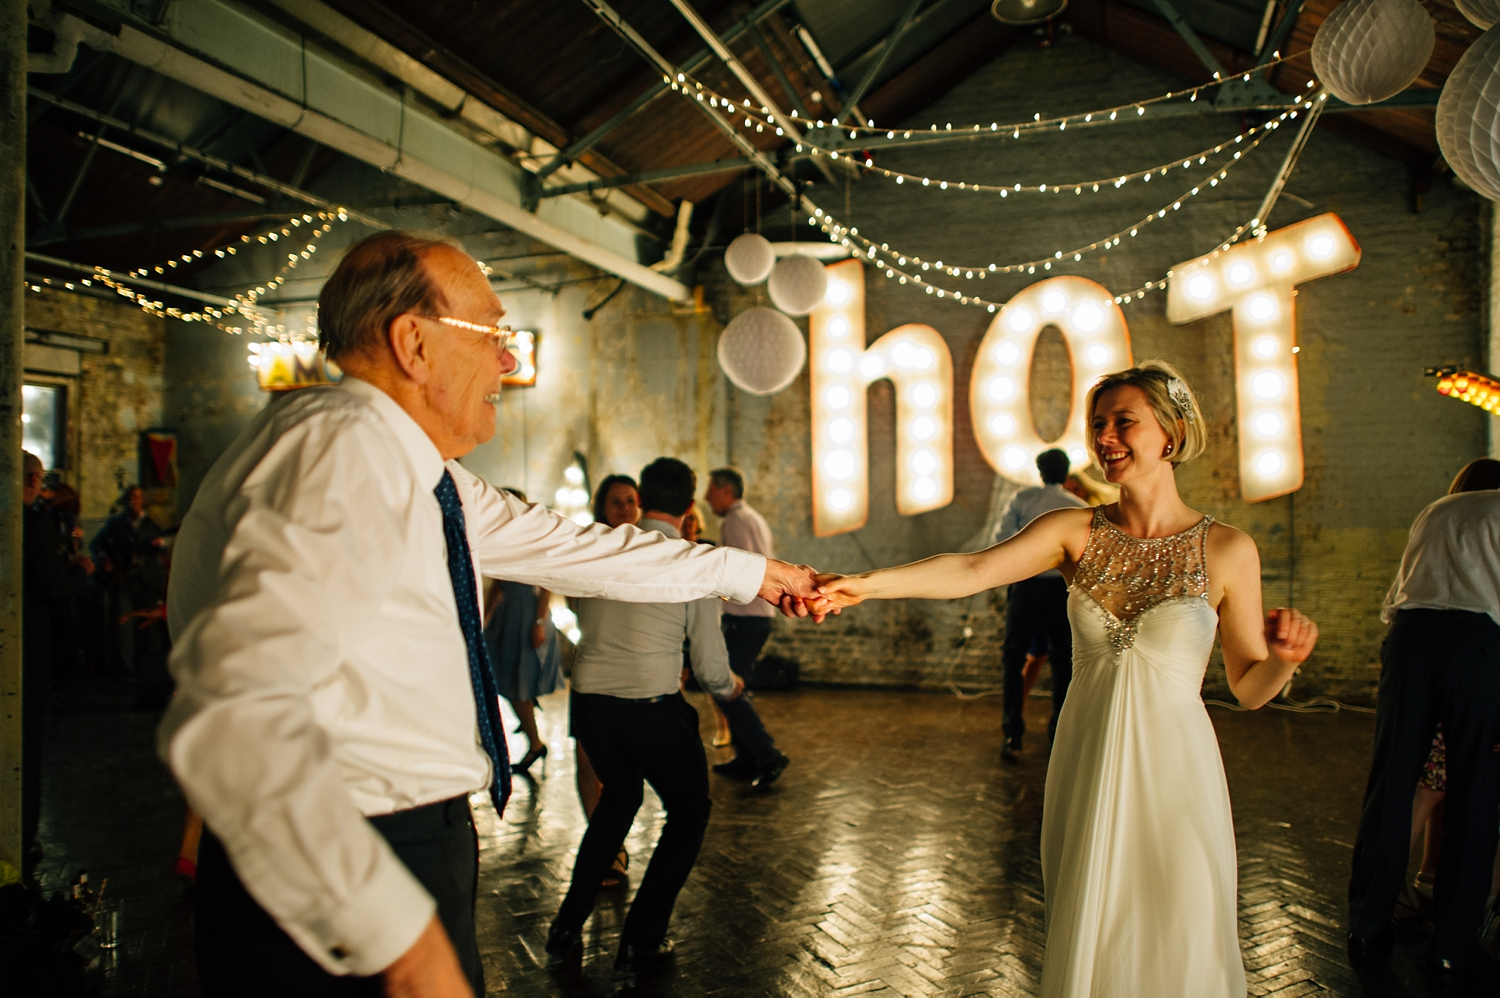 0226-lisa-devine-alternative-wedding-photography-london-hackney-dalston-london-photography-townhall-hotel.JPG